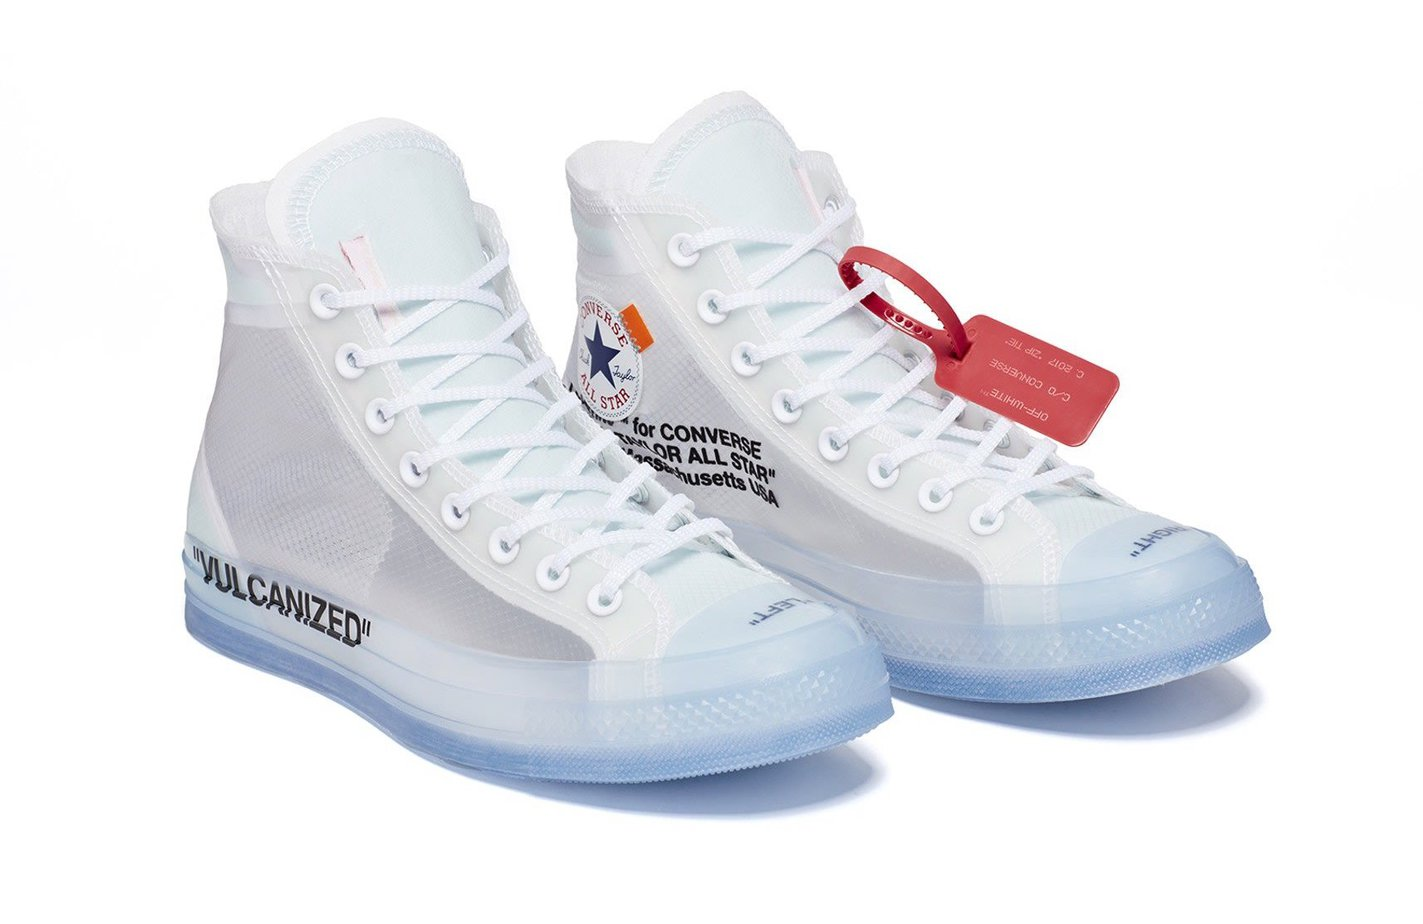 bce2d157226d OFF-WHITE x Converse Chuck 70 Online Links   Raffles - JustFreshKicks